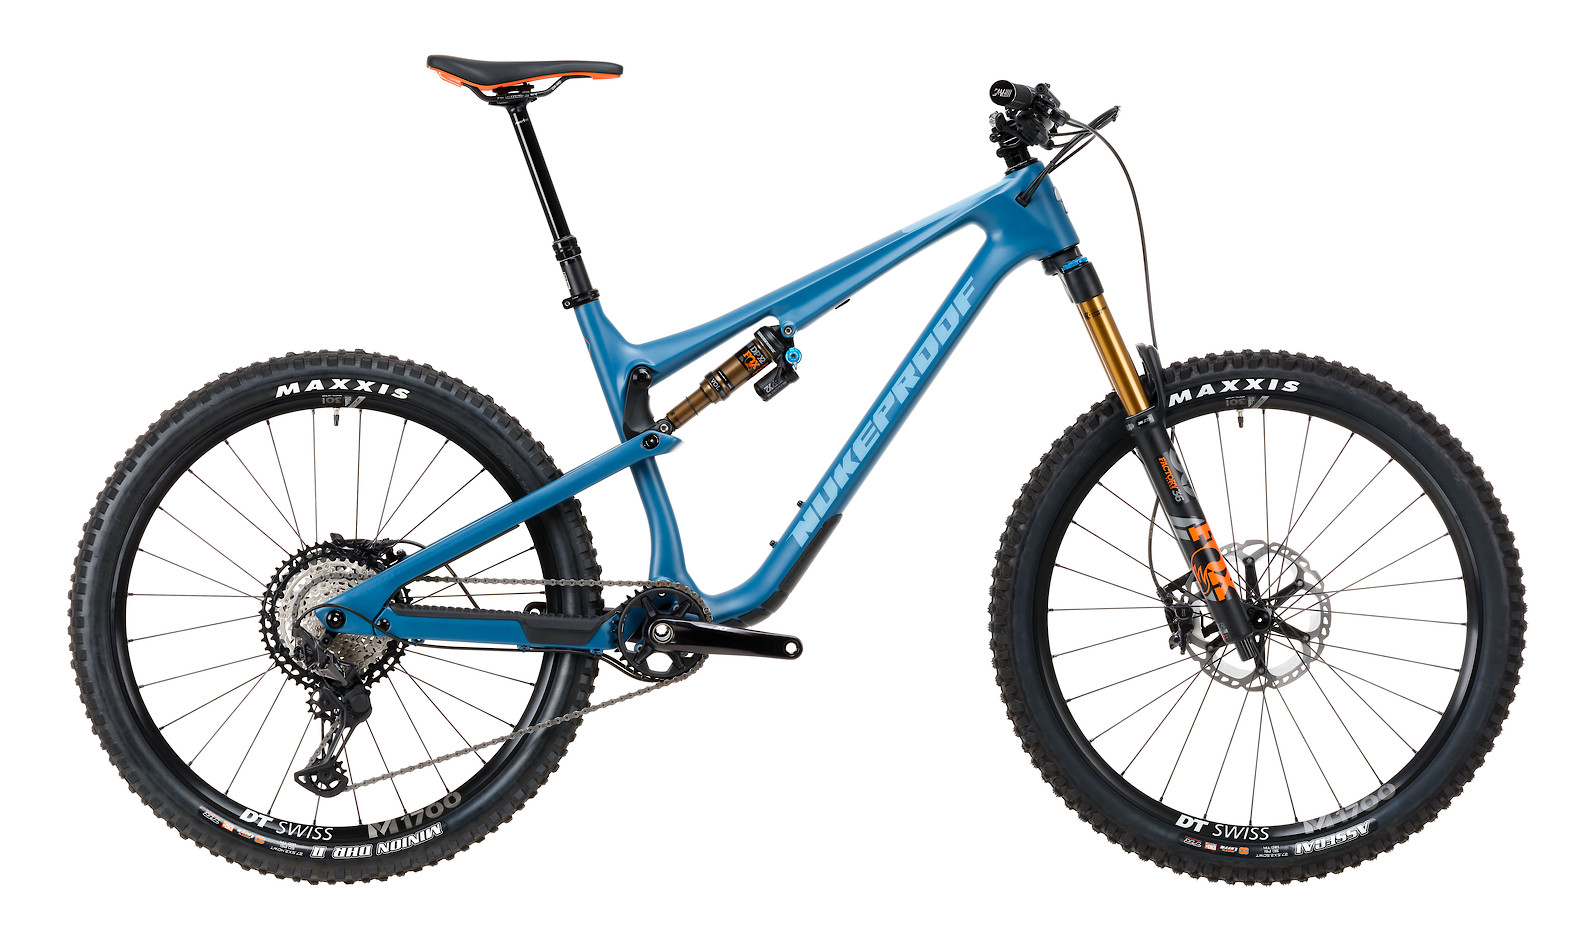 2020 Nukeproof Reactor 275c Factory